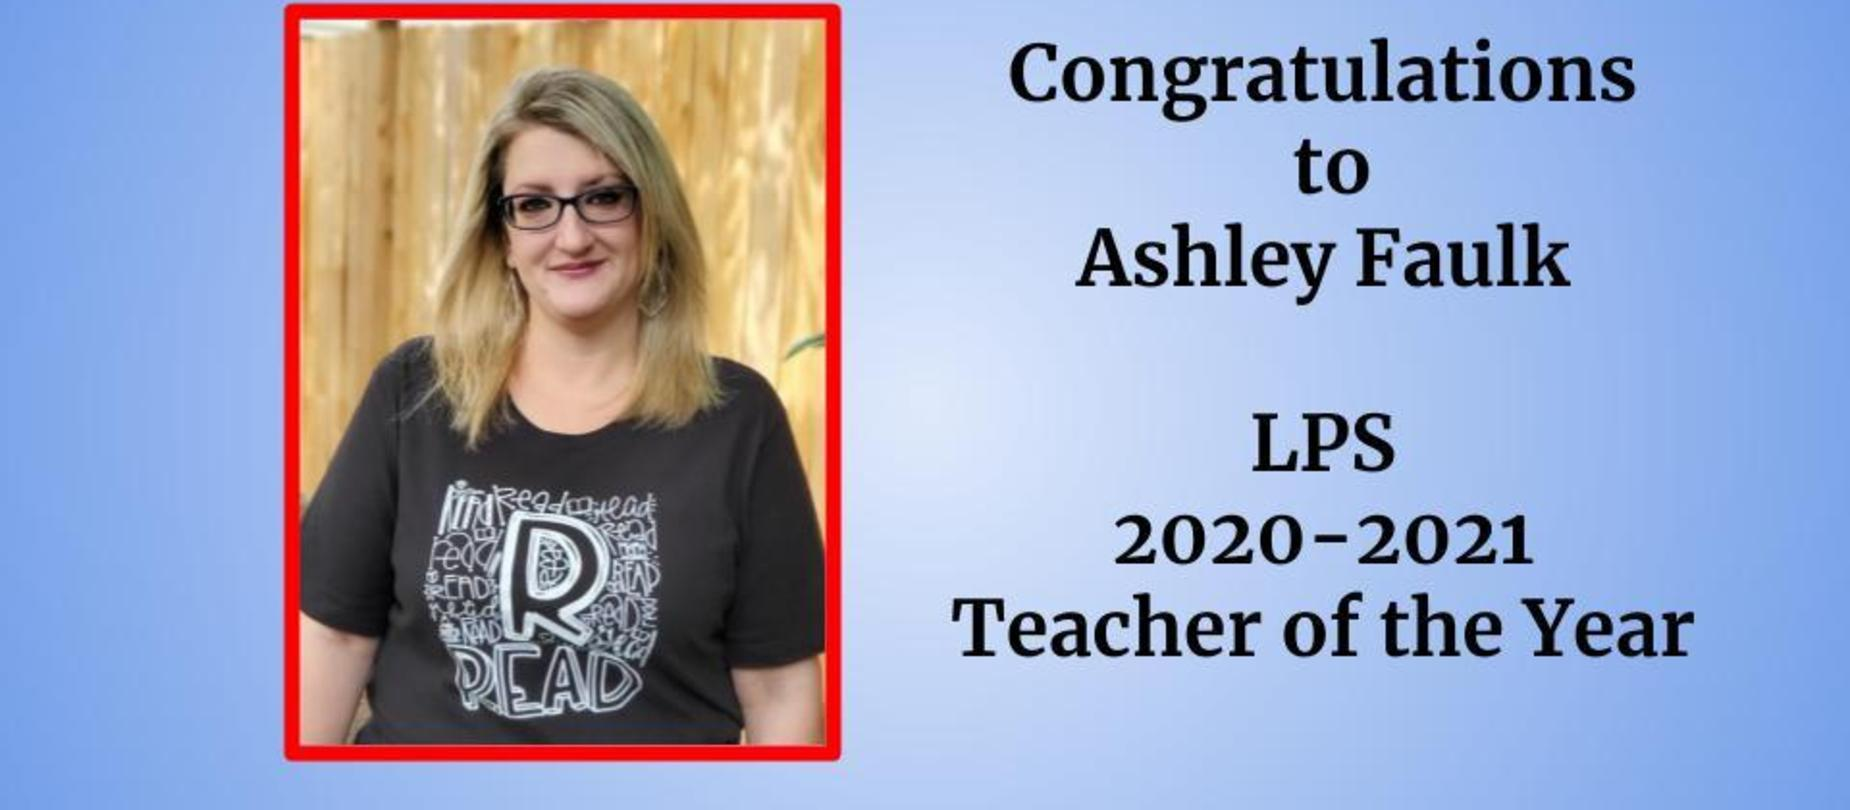 Teacher of the Year Ashley Faulk